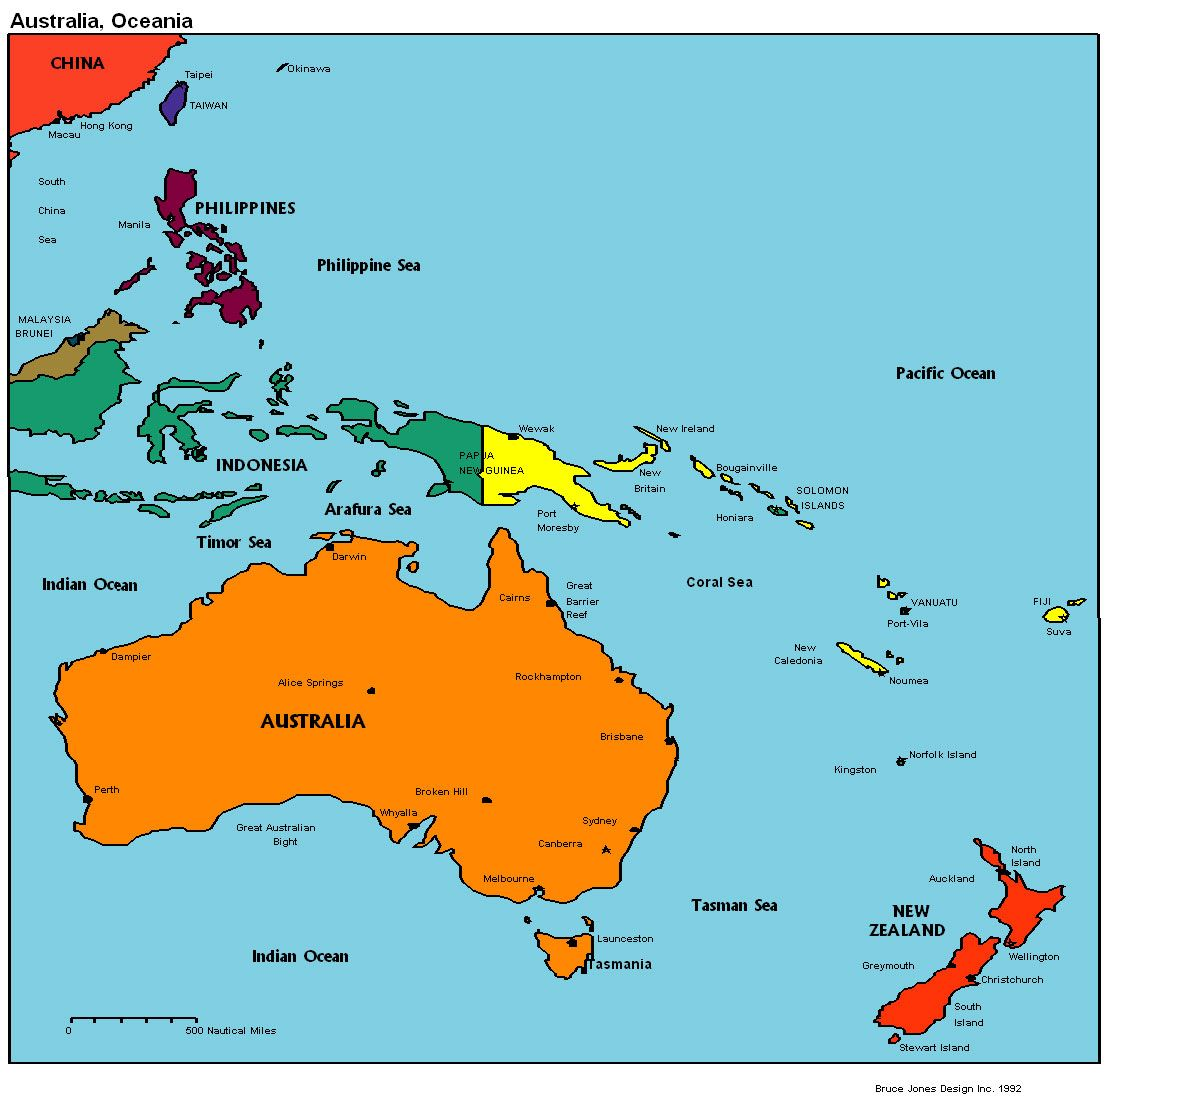 Map of Australia, Fiji, Kirbati, Marshall Islands, Papa New Guinea Kiribati Location On World Map on kiribati pacific island map, south pacific islands world map, islands of kiribati map, marshall islands map, tuvalu world map,